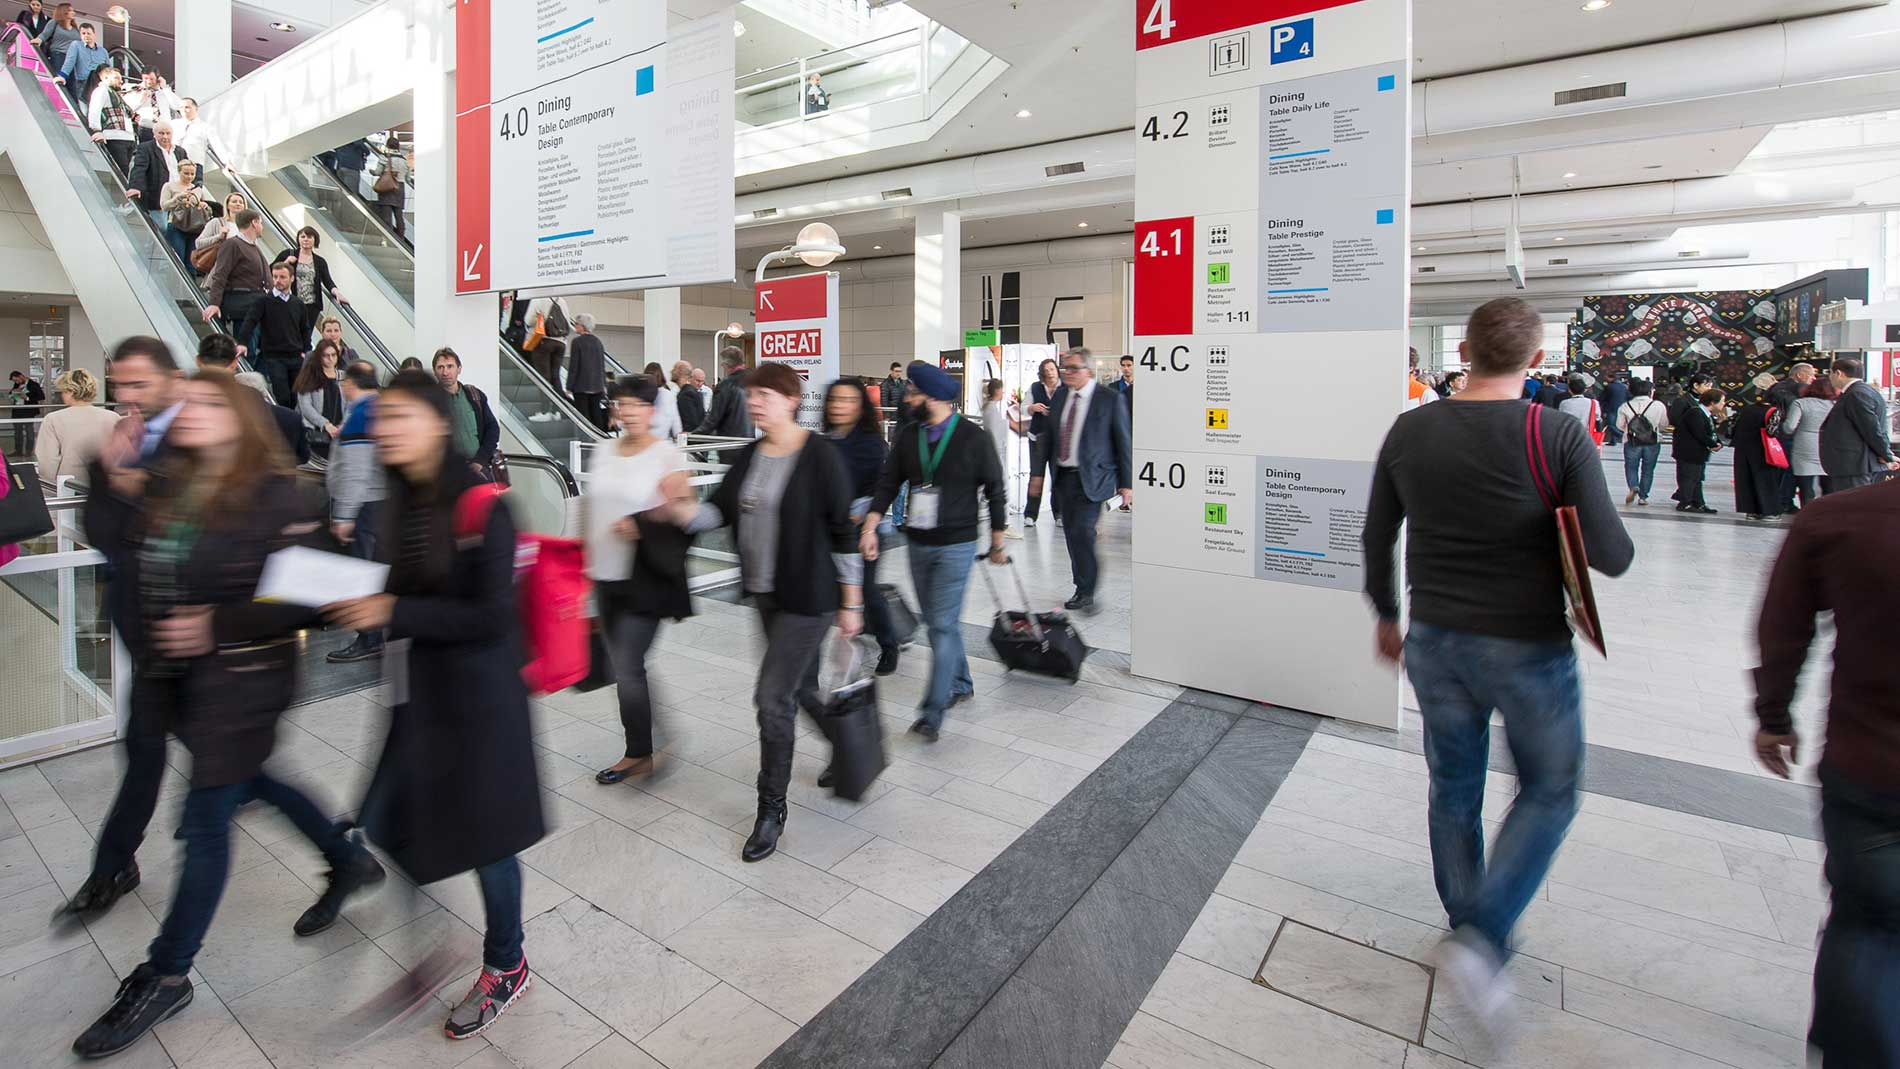 Exhibitor services for Ambiente messe frankfurt